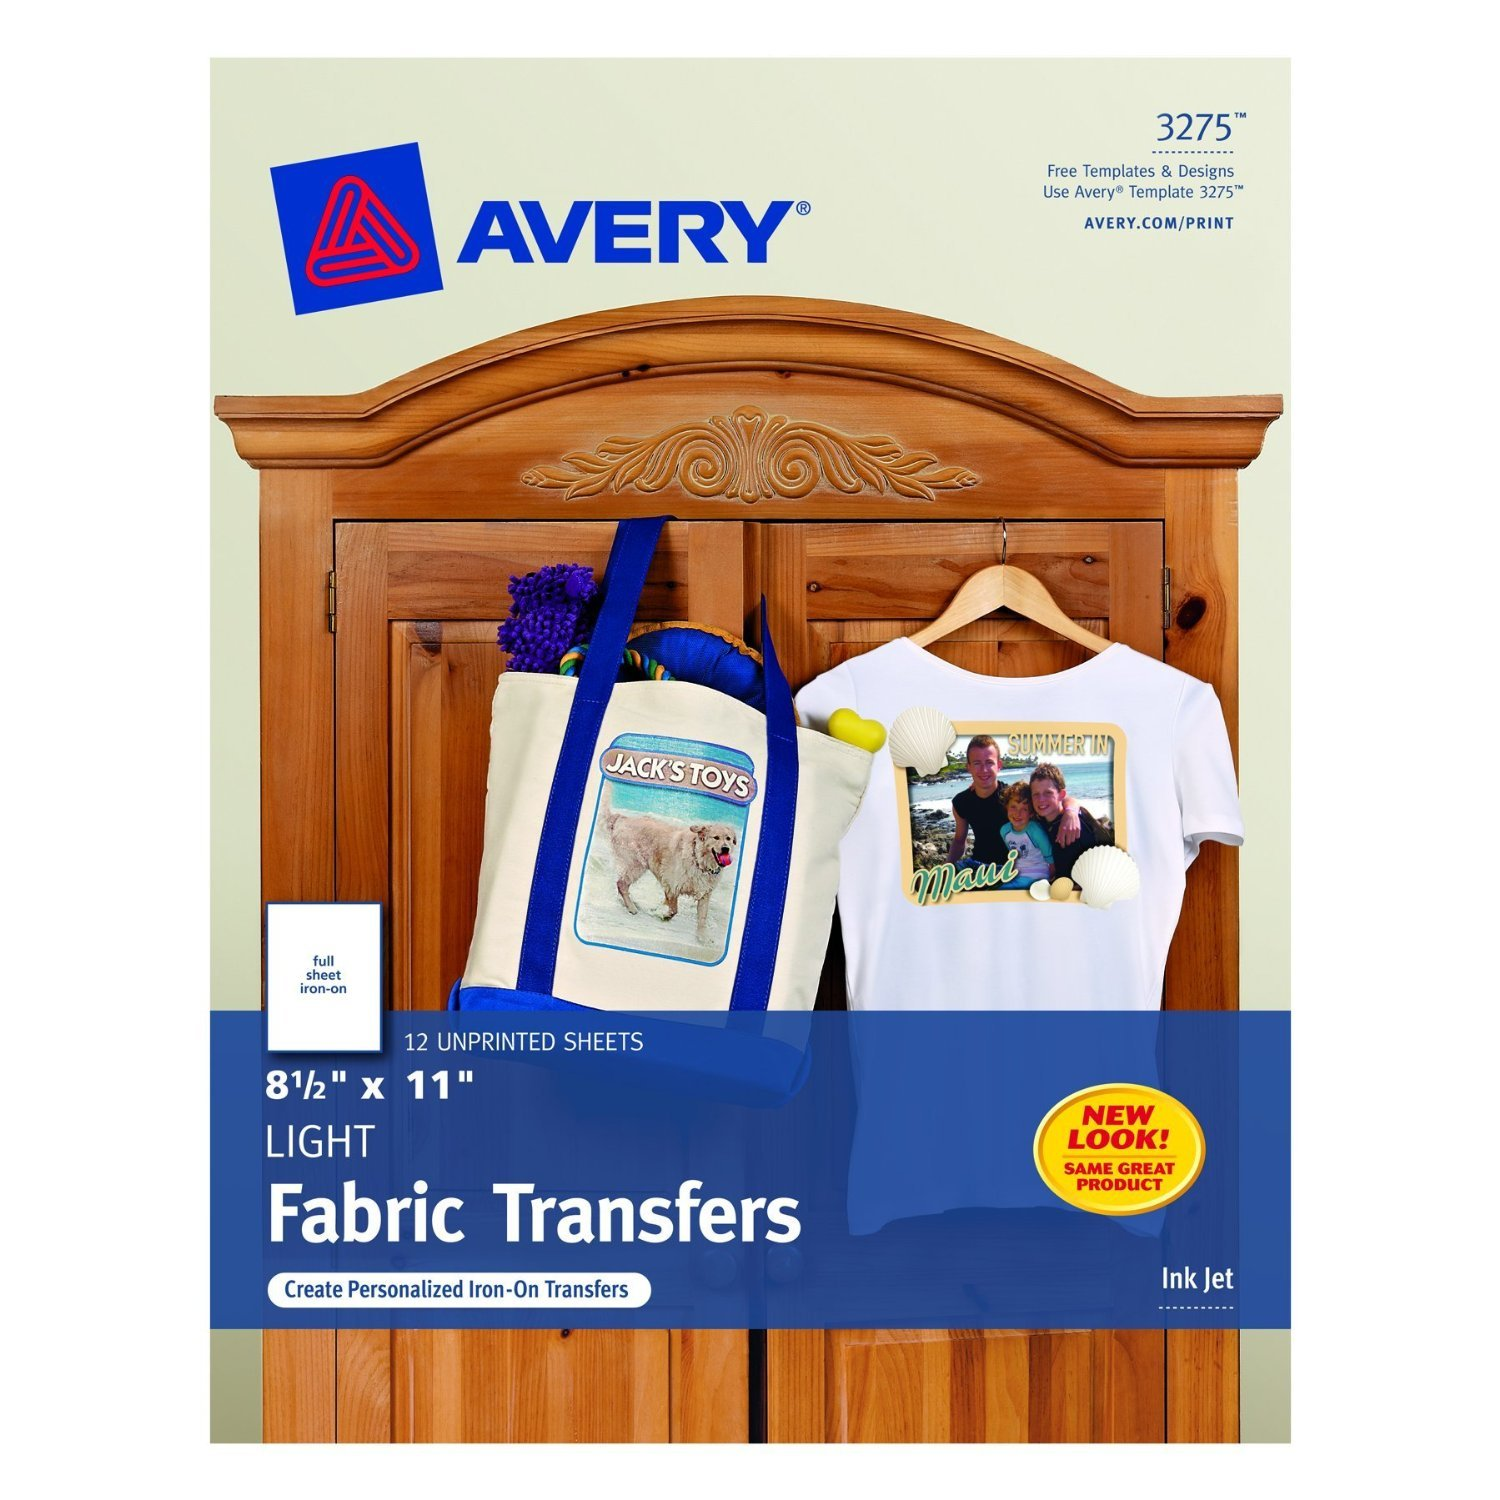 Avery T-Shirt Transfers for Inkjet Printers, 8.5 x 11 Inches, 6 Pack (03275)